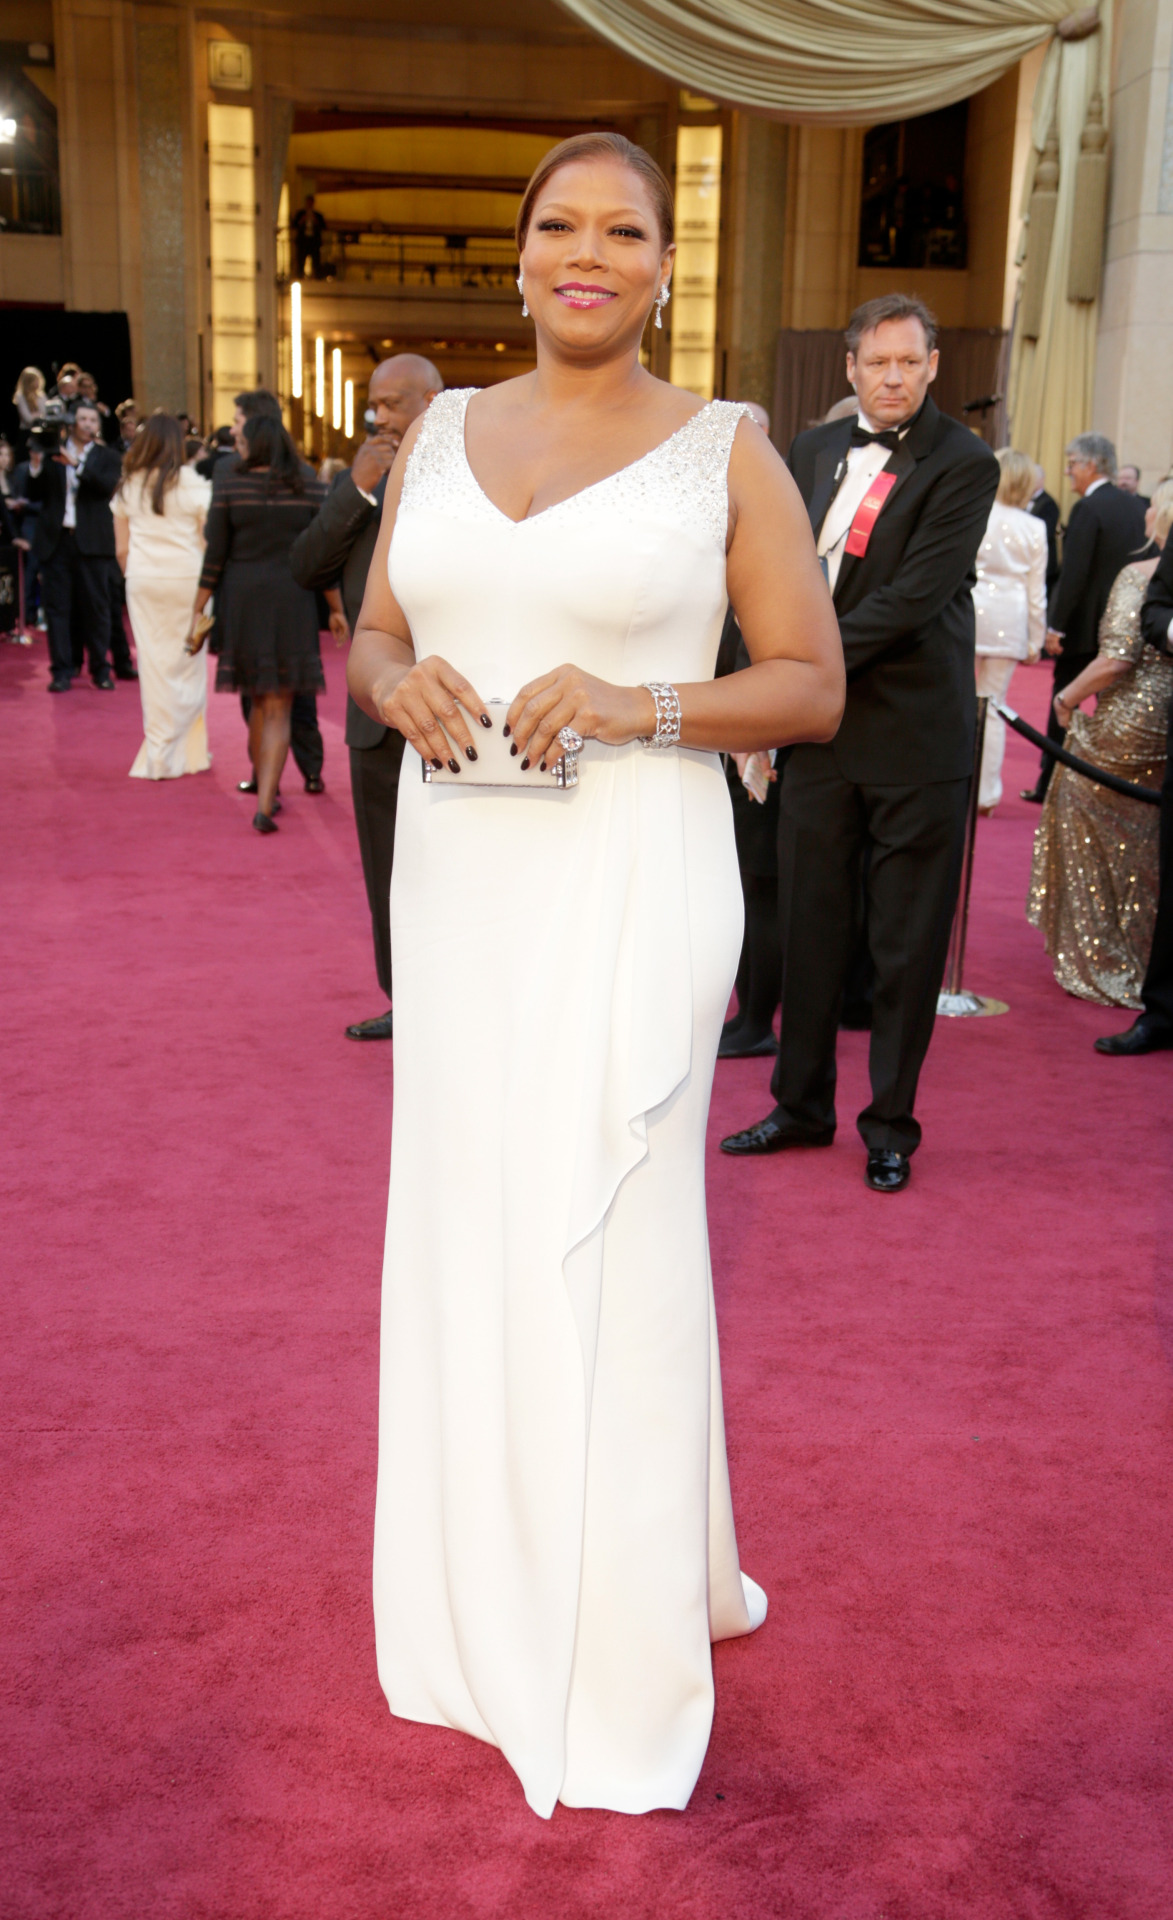 omgthatdress:  Latifah Reminding us all why she's a QUEEN!  Agreed. This lady proves a woman doesn't have to be a size 2 to be sexy and elegant.